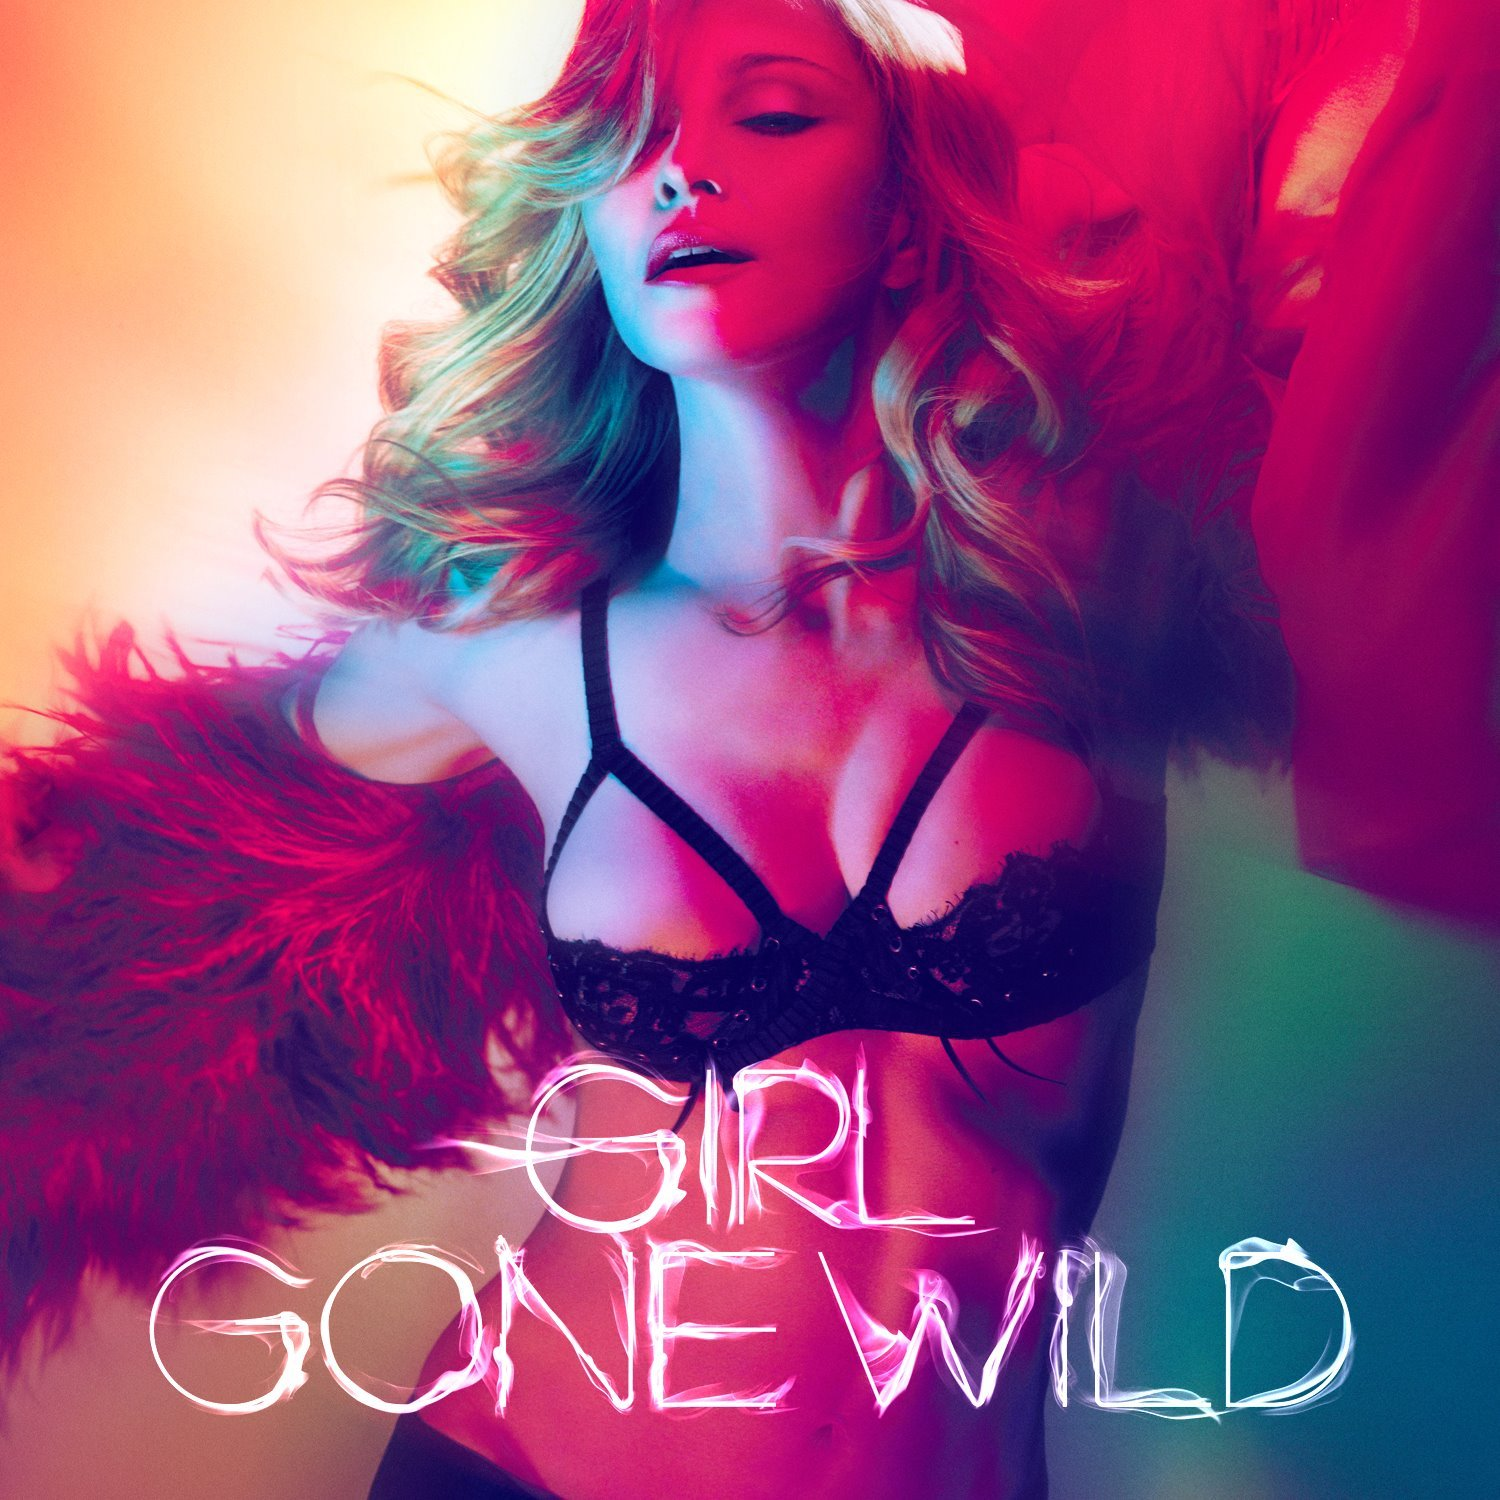 Girl Gone Wild - Vocal Production